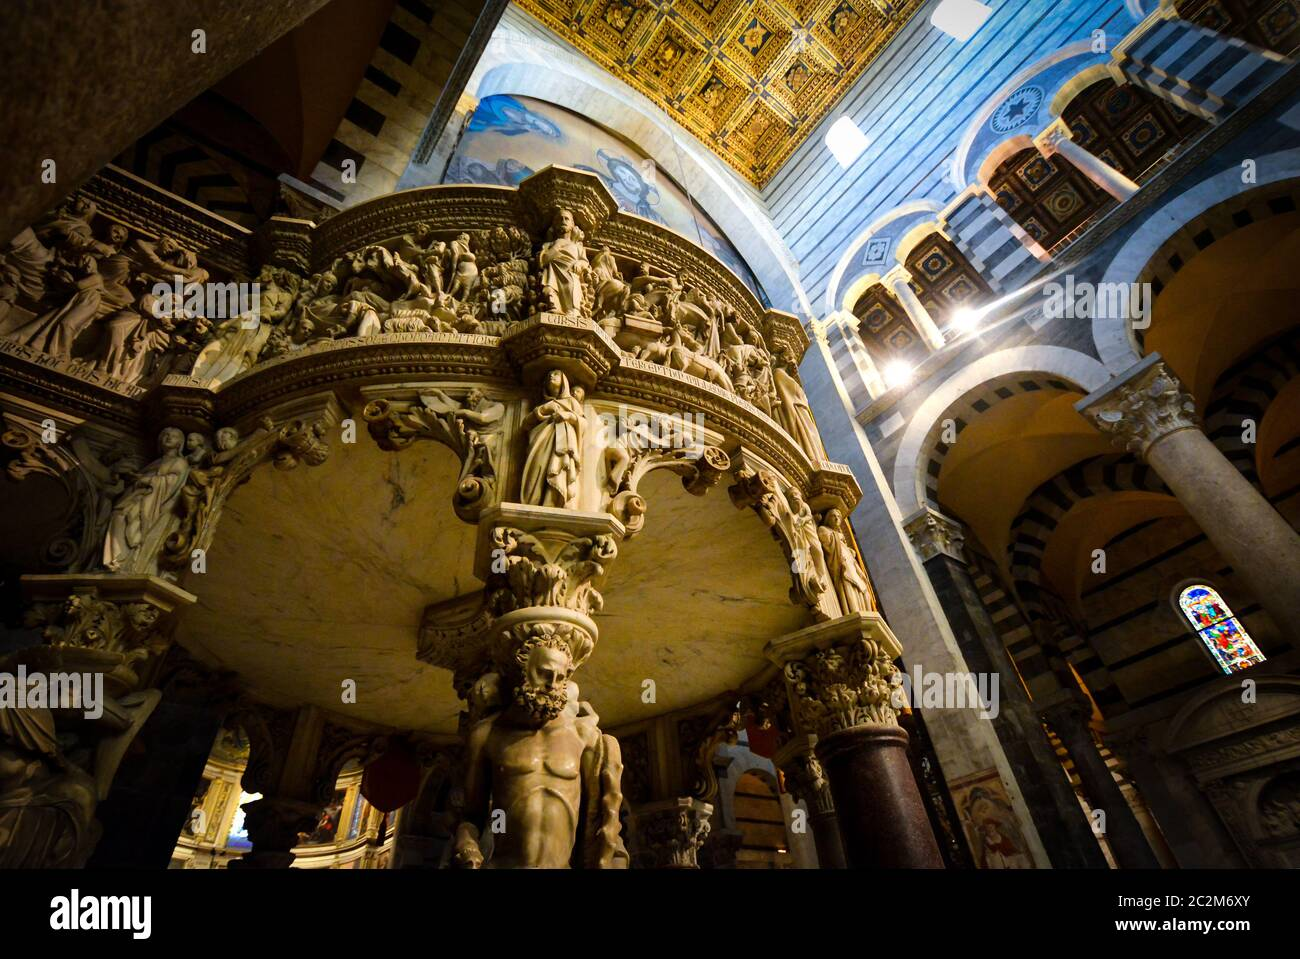 Giovanni Pisano's marble pulpit highlights the interior of the Santa Maria Assunta, Pisa's grand Duomo Cathedral in the Square of Miracles, Italy Stock Photo